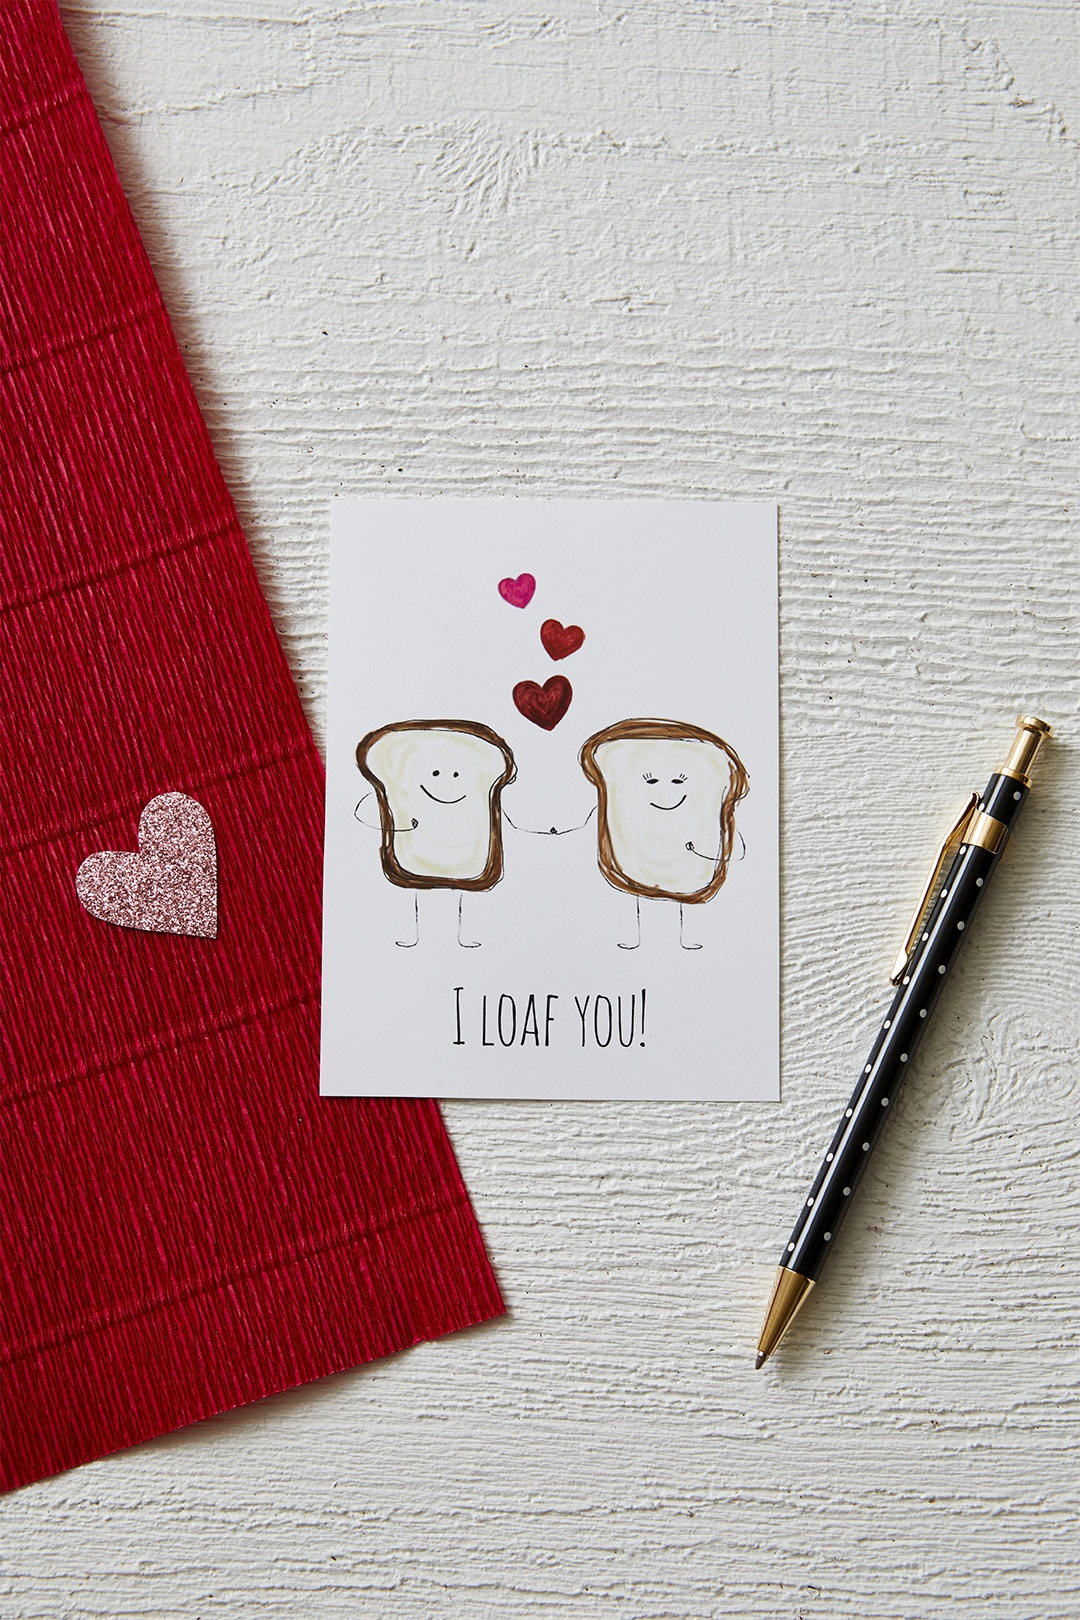 Free Printable Cards You Need For Valentine's Day - Free Printable Valentines Day Cards For Her